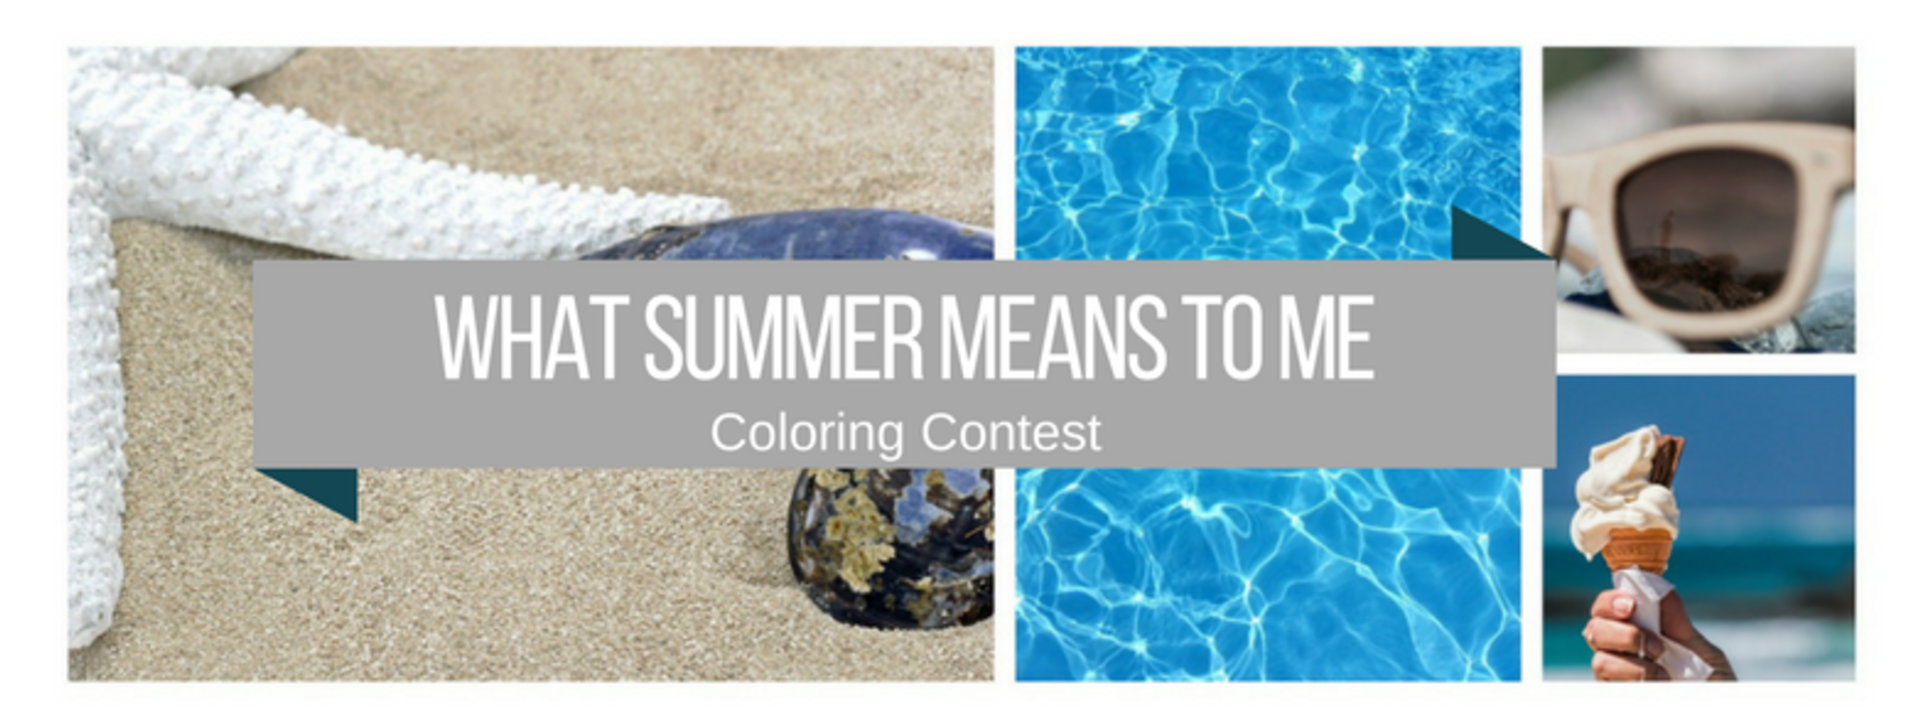 COLORING CONTEST | What Summer Means to Me 2017